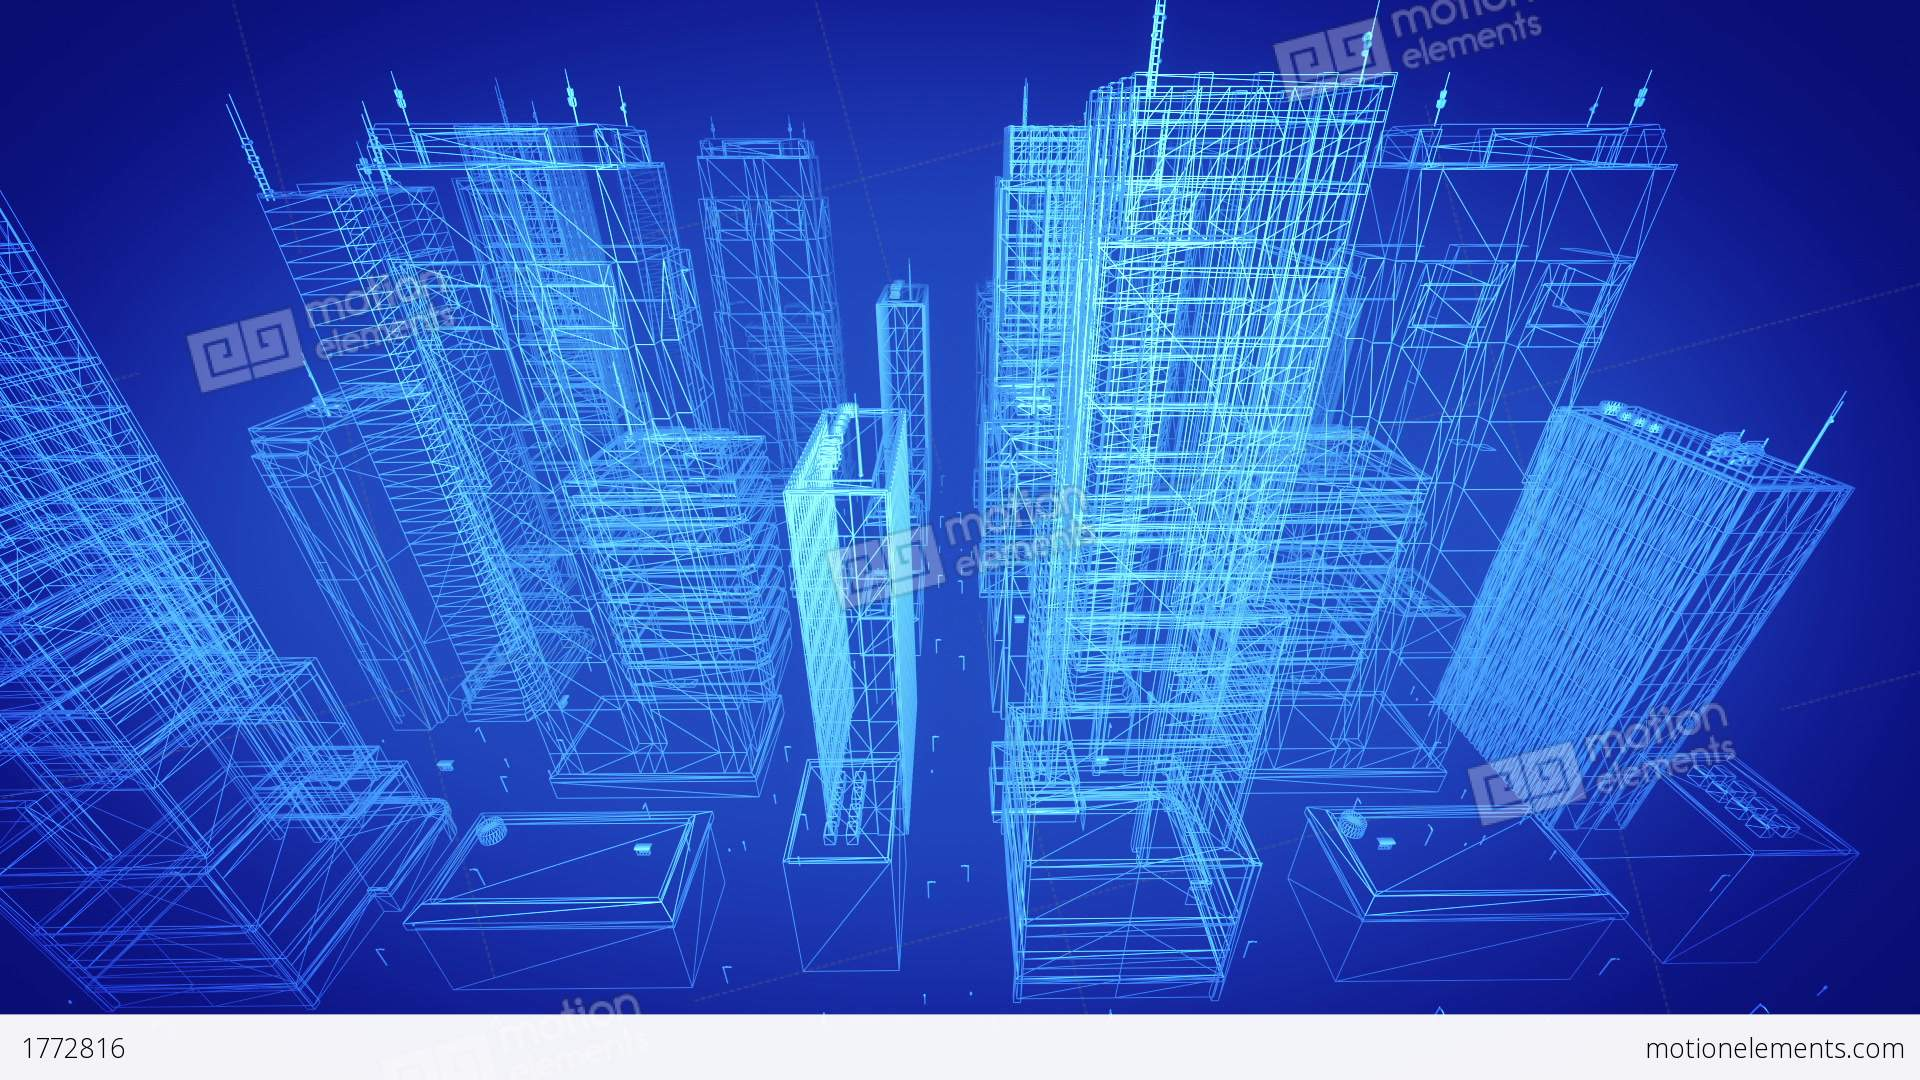 Architectural blueprint of contemporary buildings blue tint stock architectural blueprint of contemporary buildings blue tint stock video footage malvernweather Choice Image